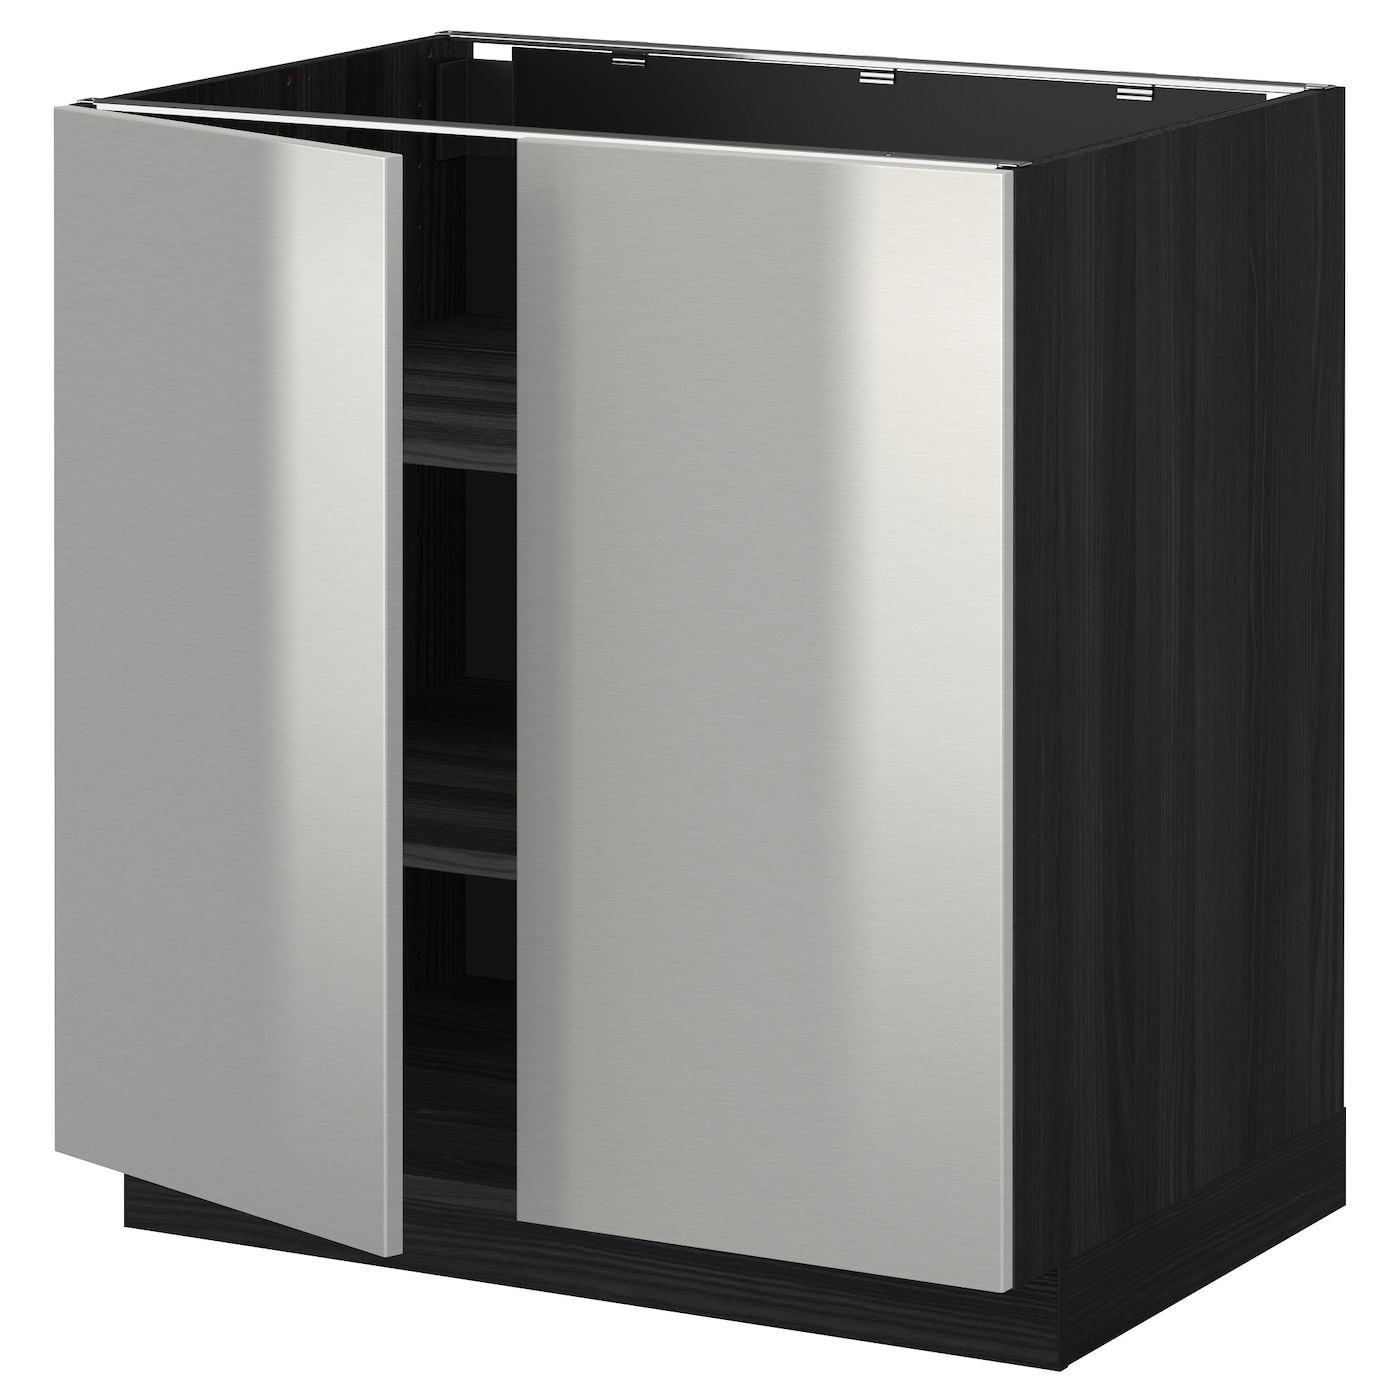 Metod base cabinet with shelves 2 doors black grevsta for Metal cabinet doors kitchen